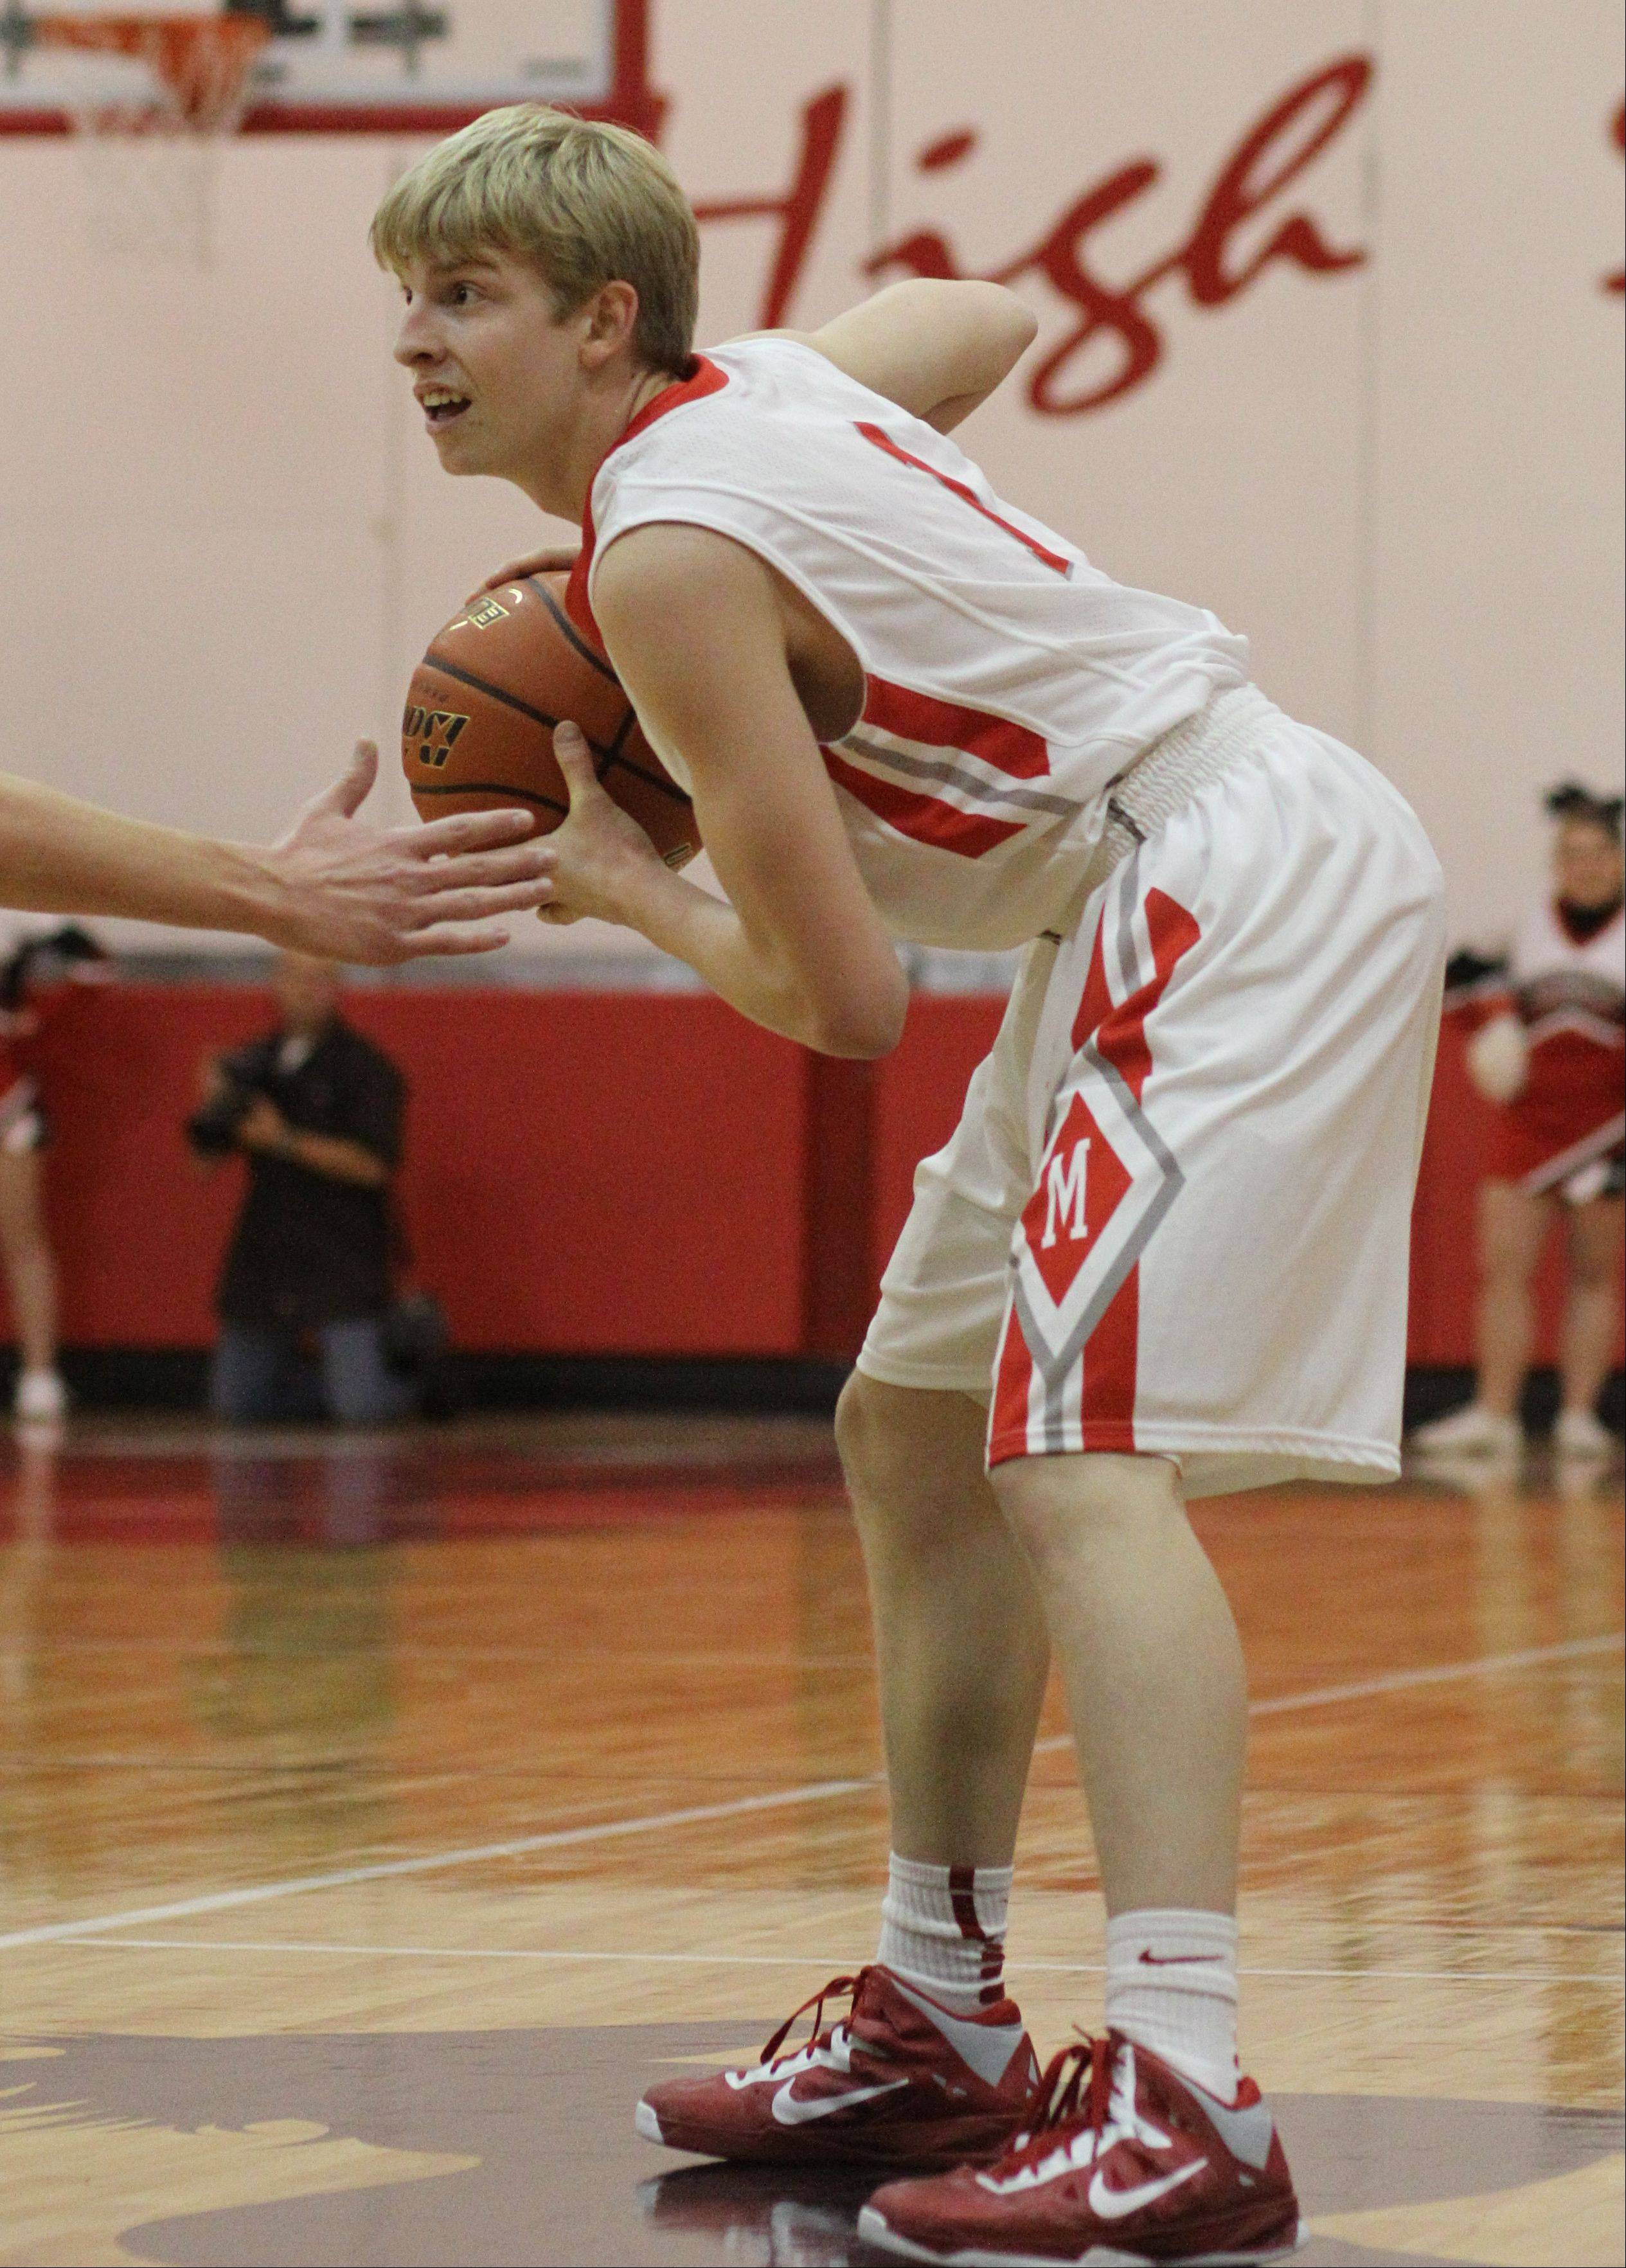 Images from the Lake Zurich at Mundelein boys basketball game on Tuesday, Dec. 4.